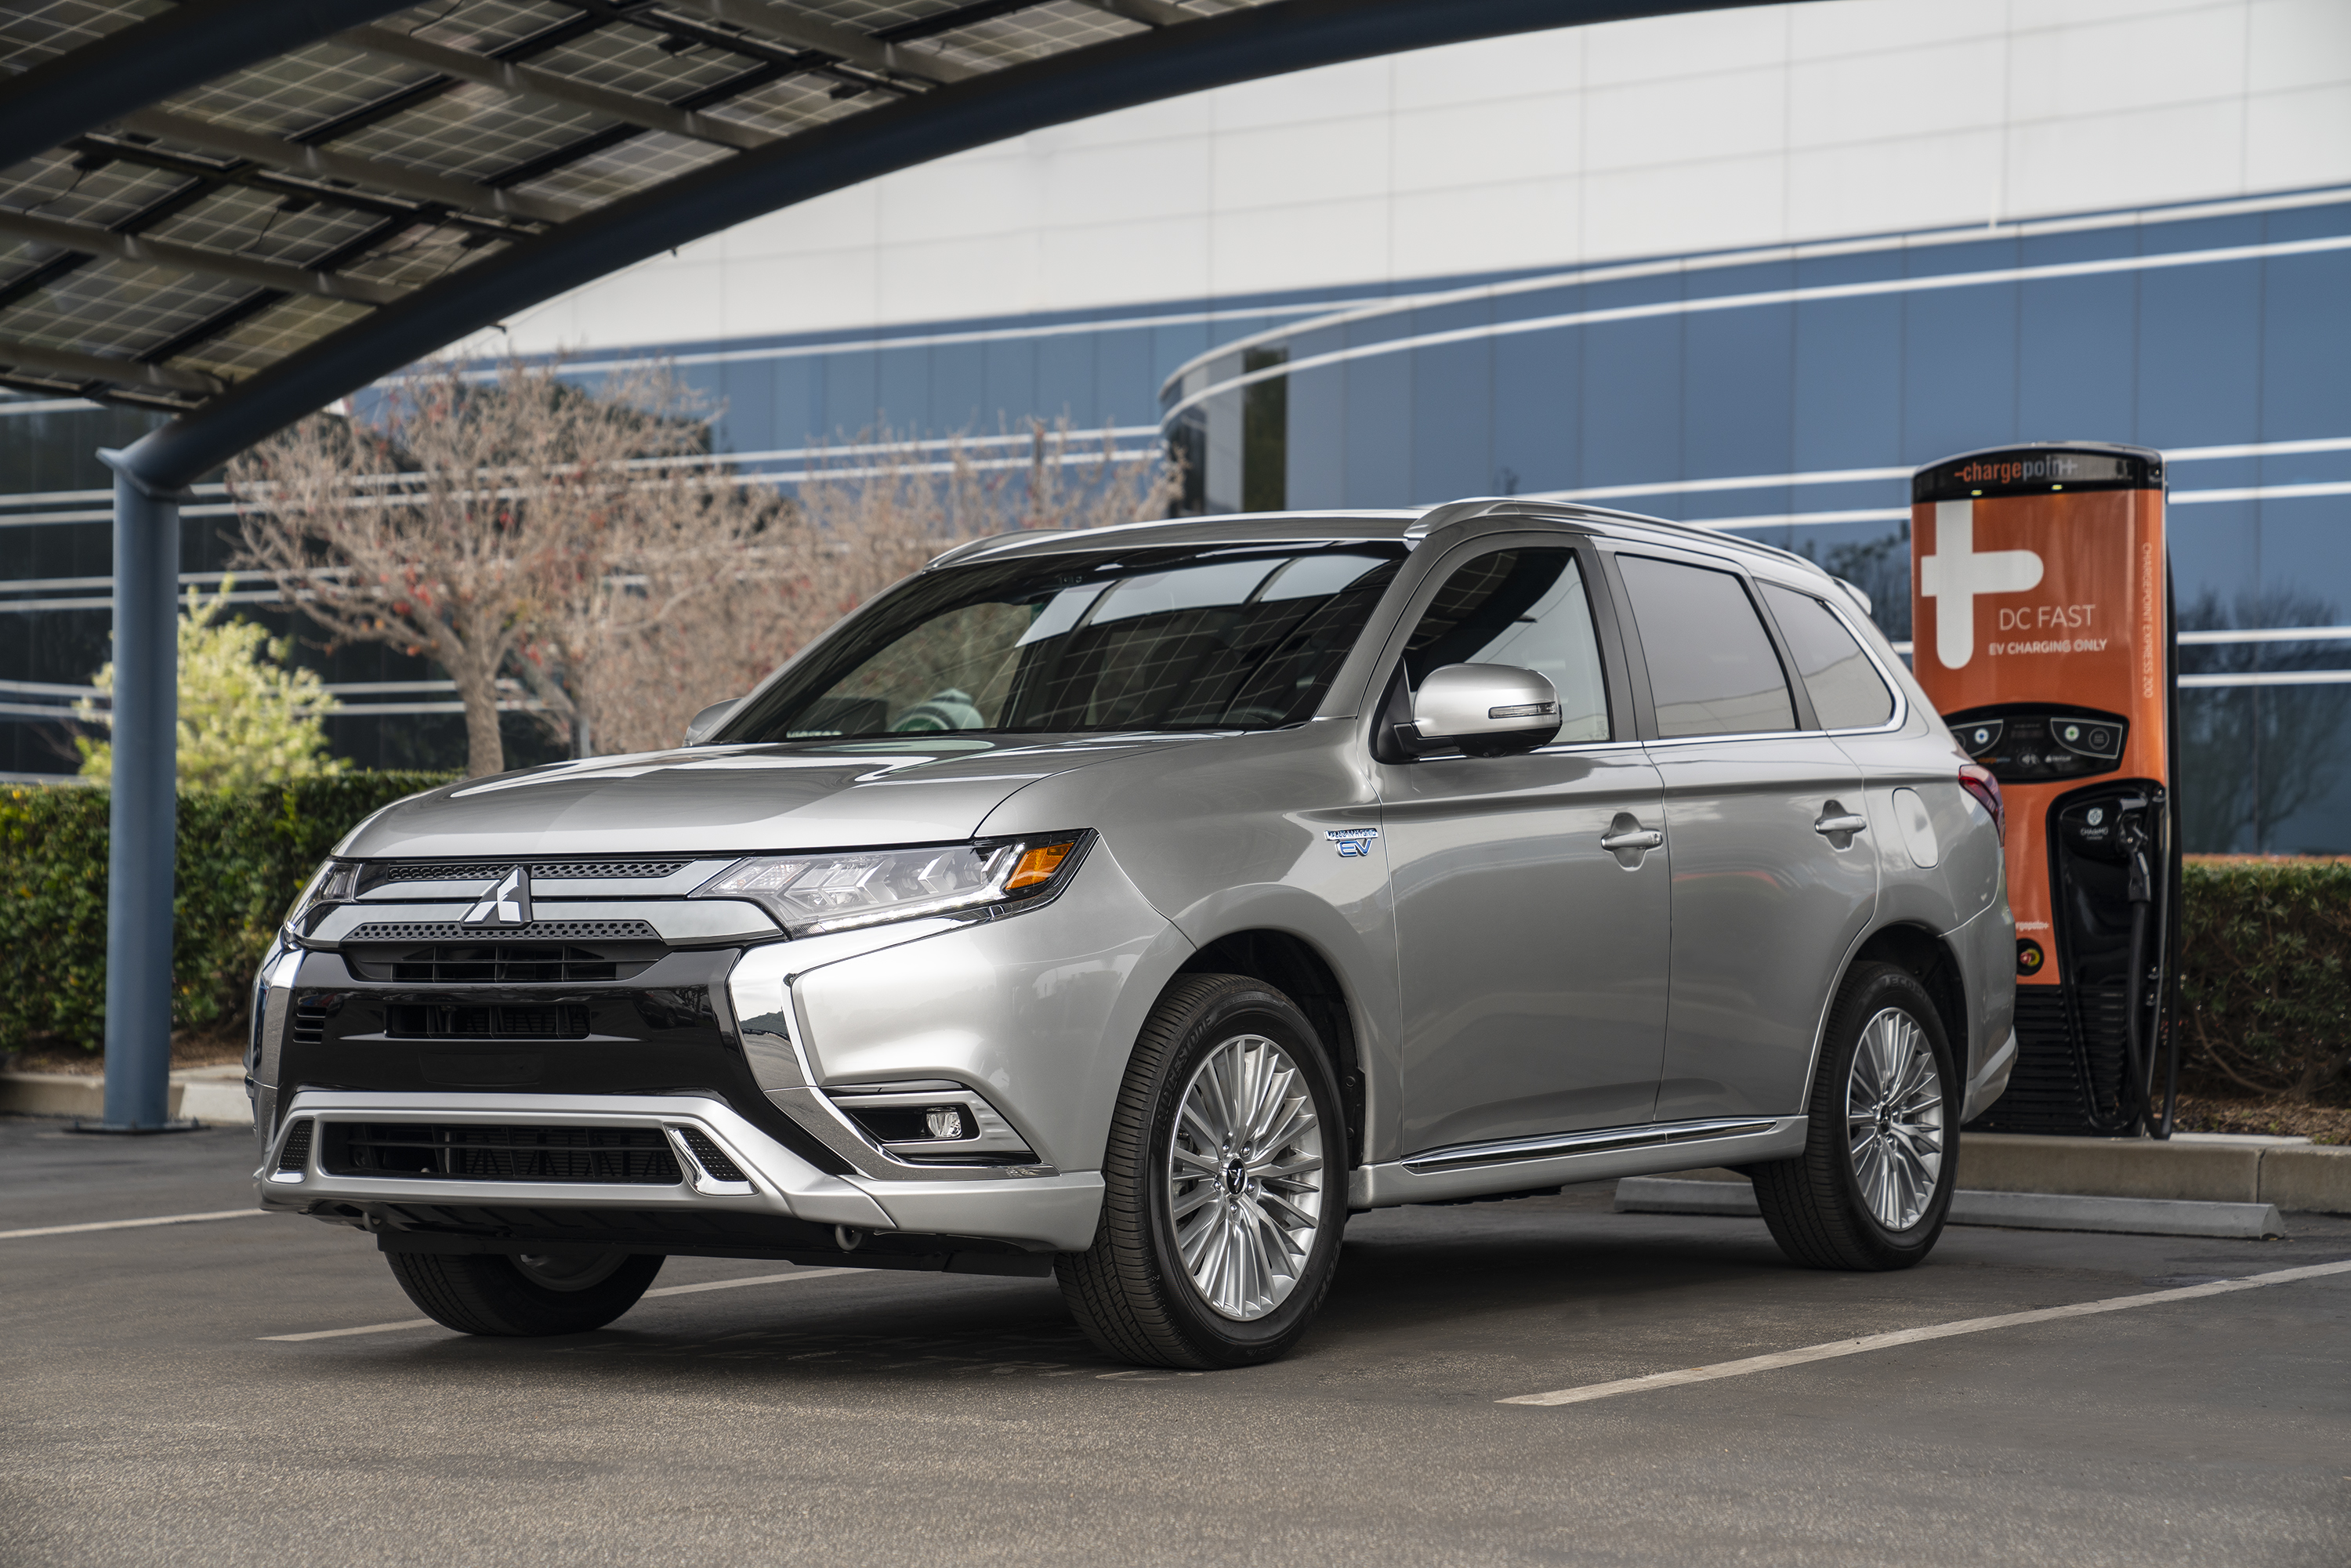 89 The 2020 Mitsubishi Outlander Phev Usa Pricing by 2020 Mitsubishi Outlander Phev Usa